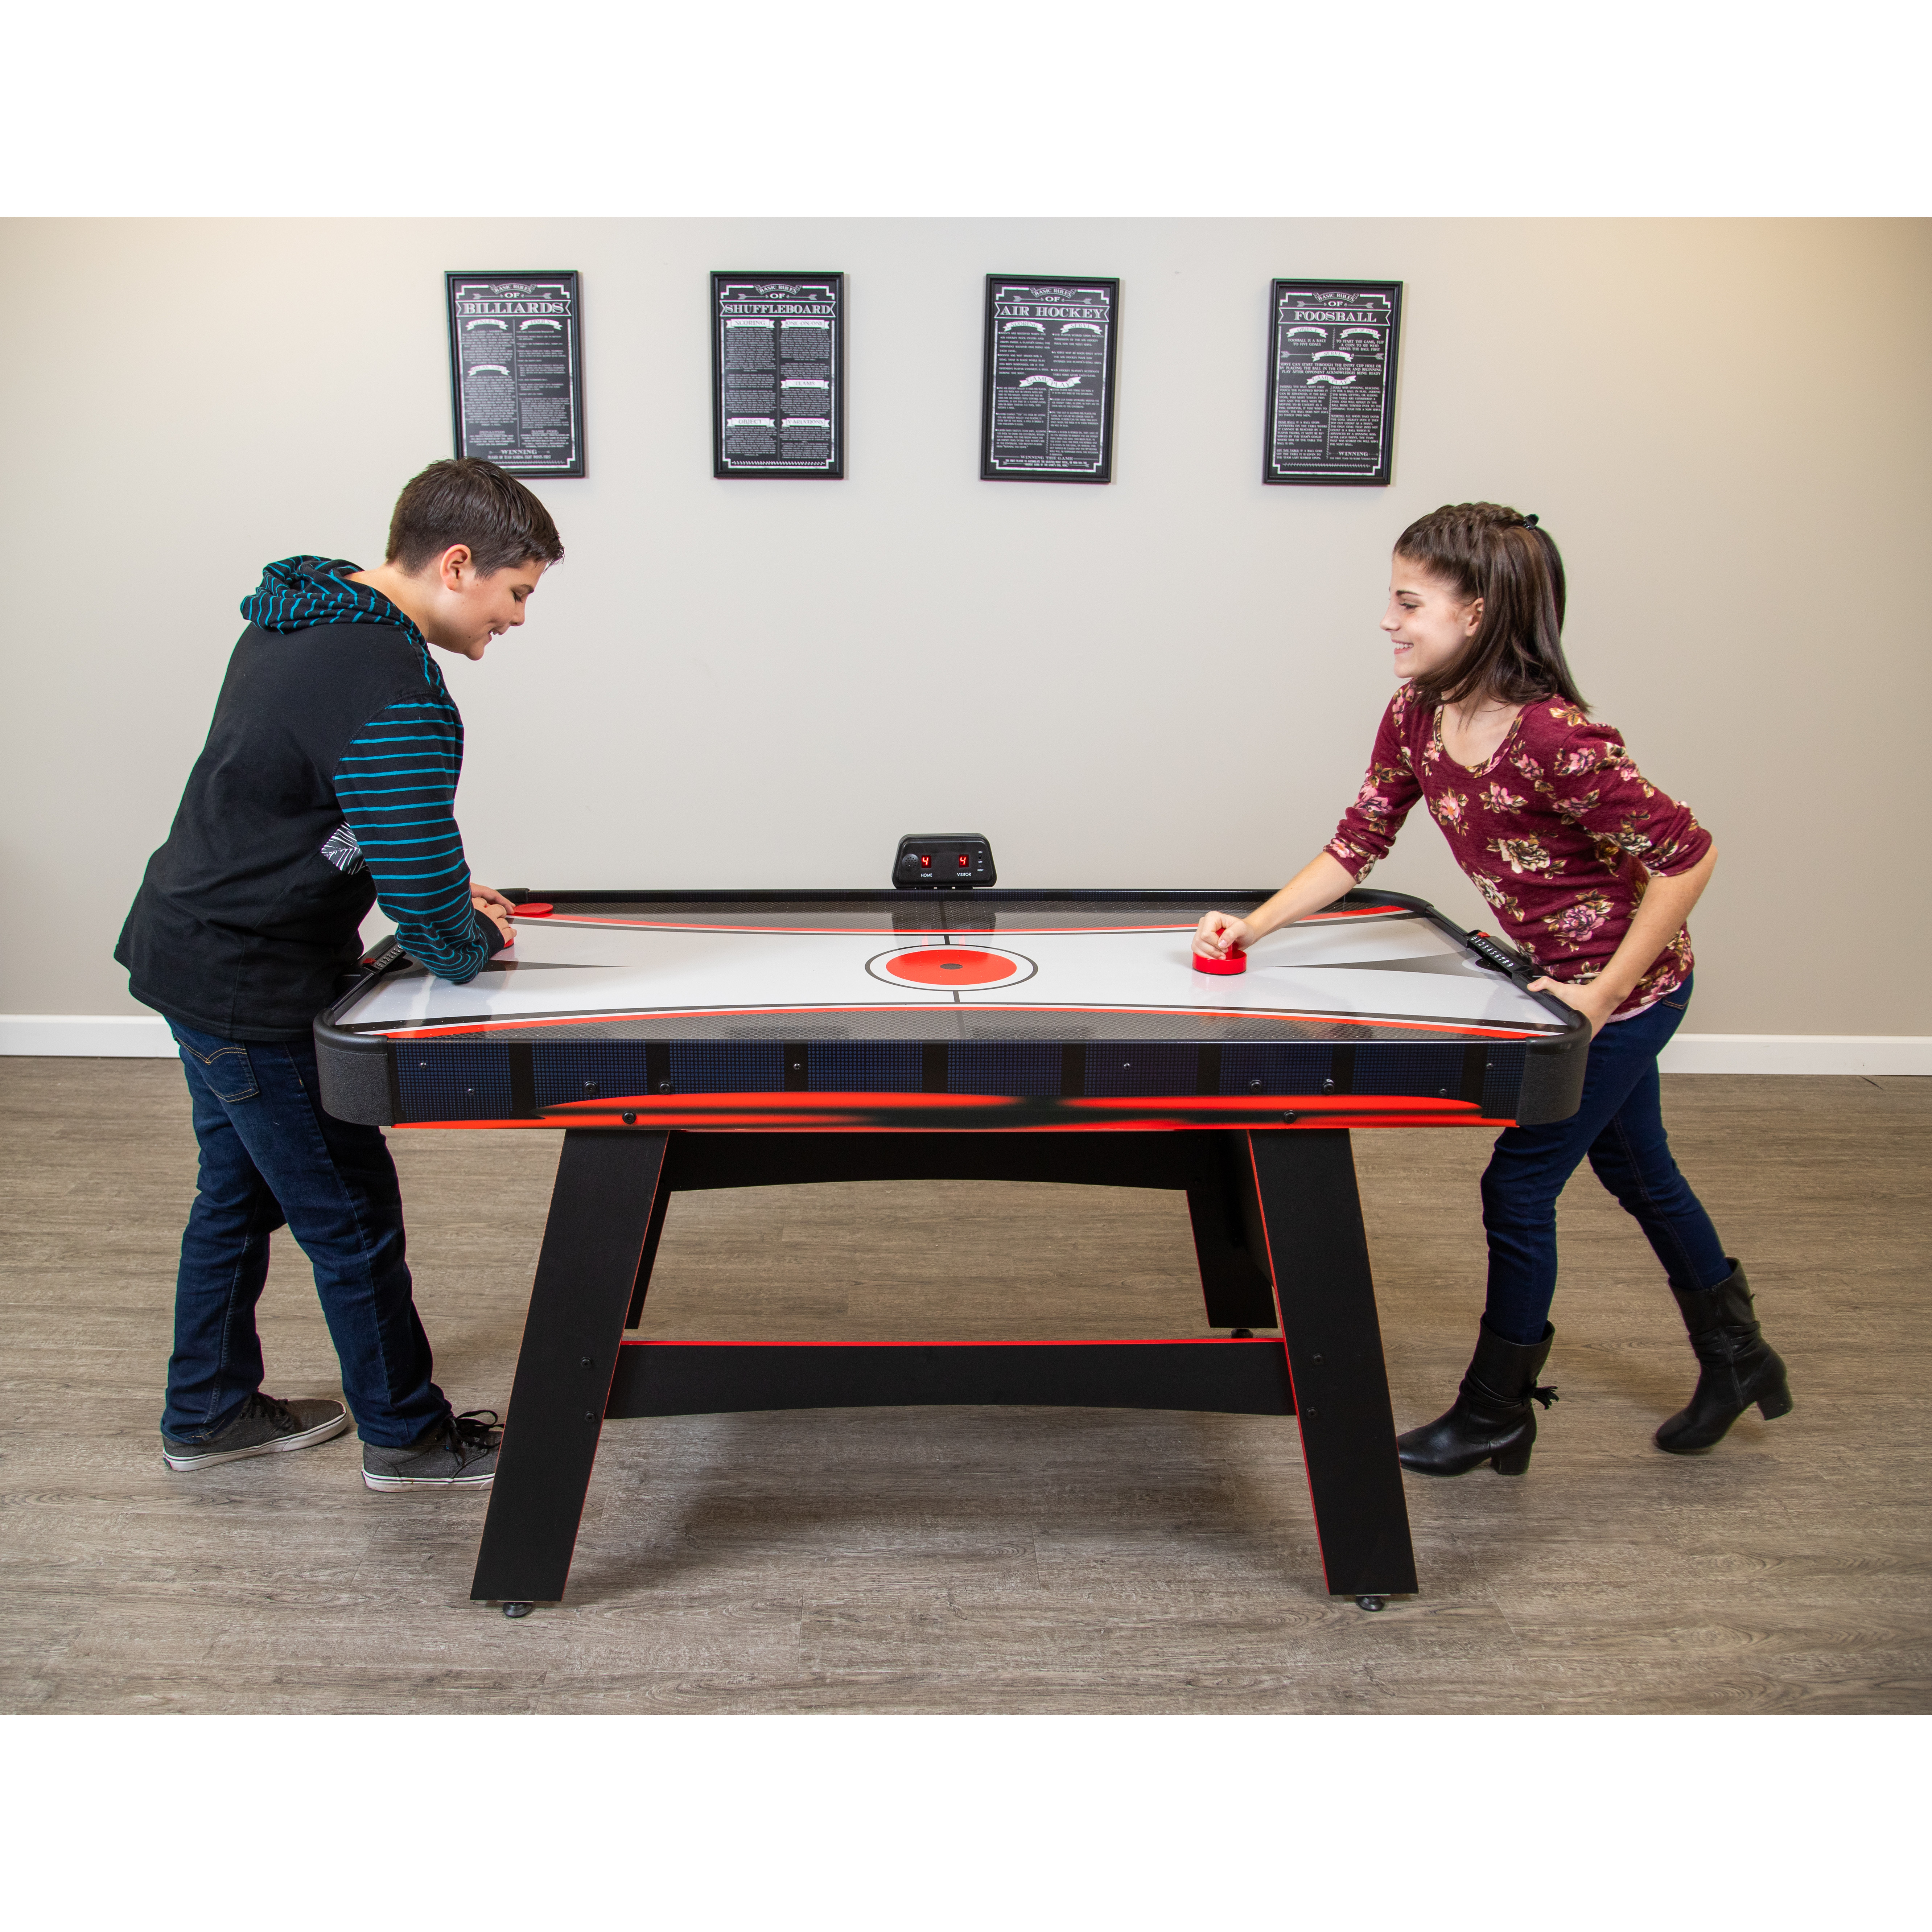 Details About Hathaway 5 Ft Ranger Air Hockey Table With Manual And Electronic Scoring System